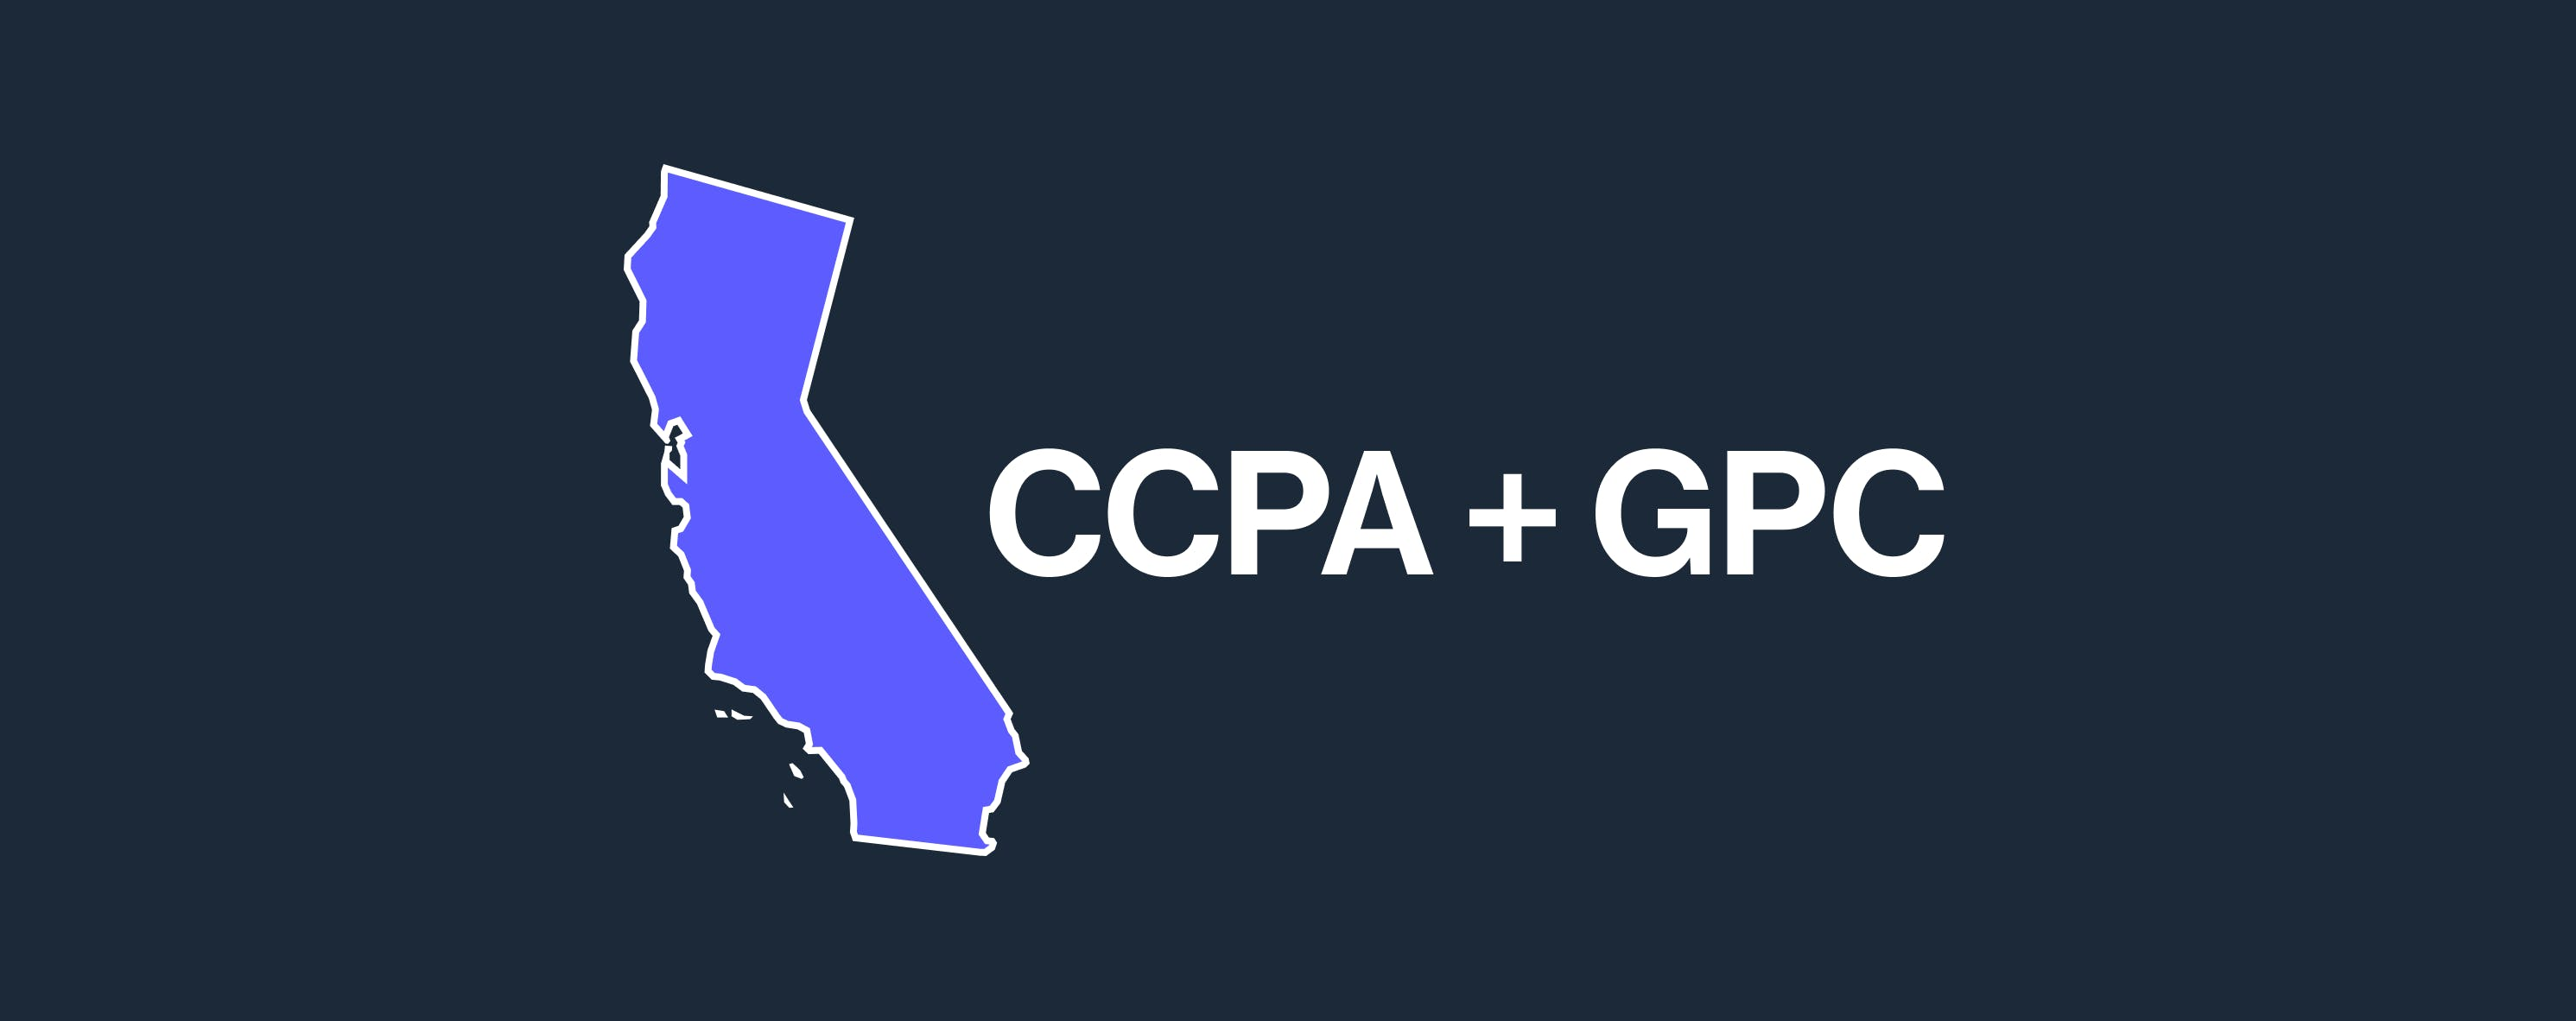 An image of a map of California, with the words CCPA + GPC next to it.